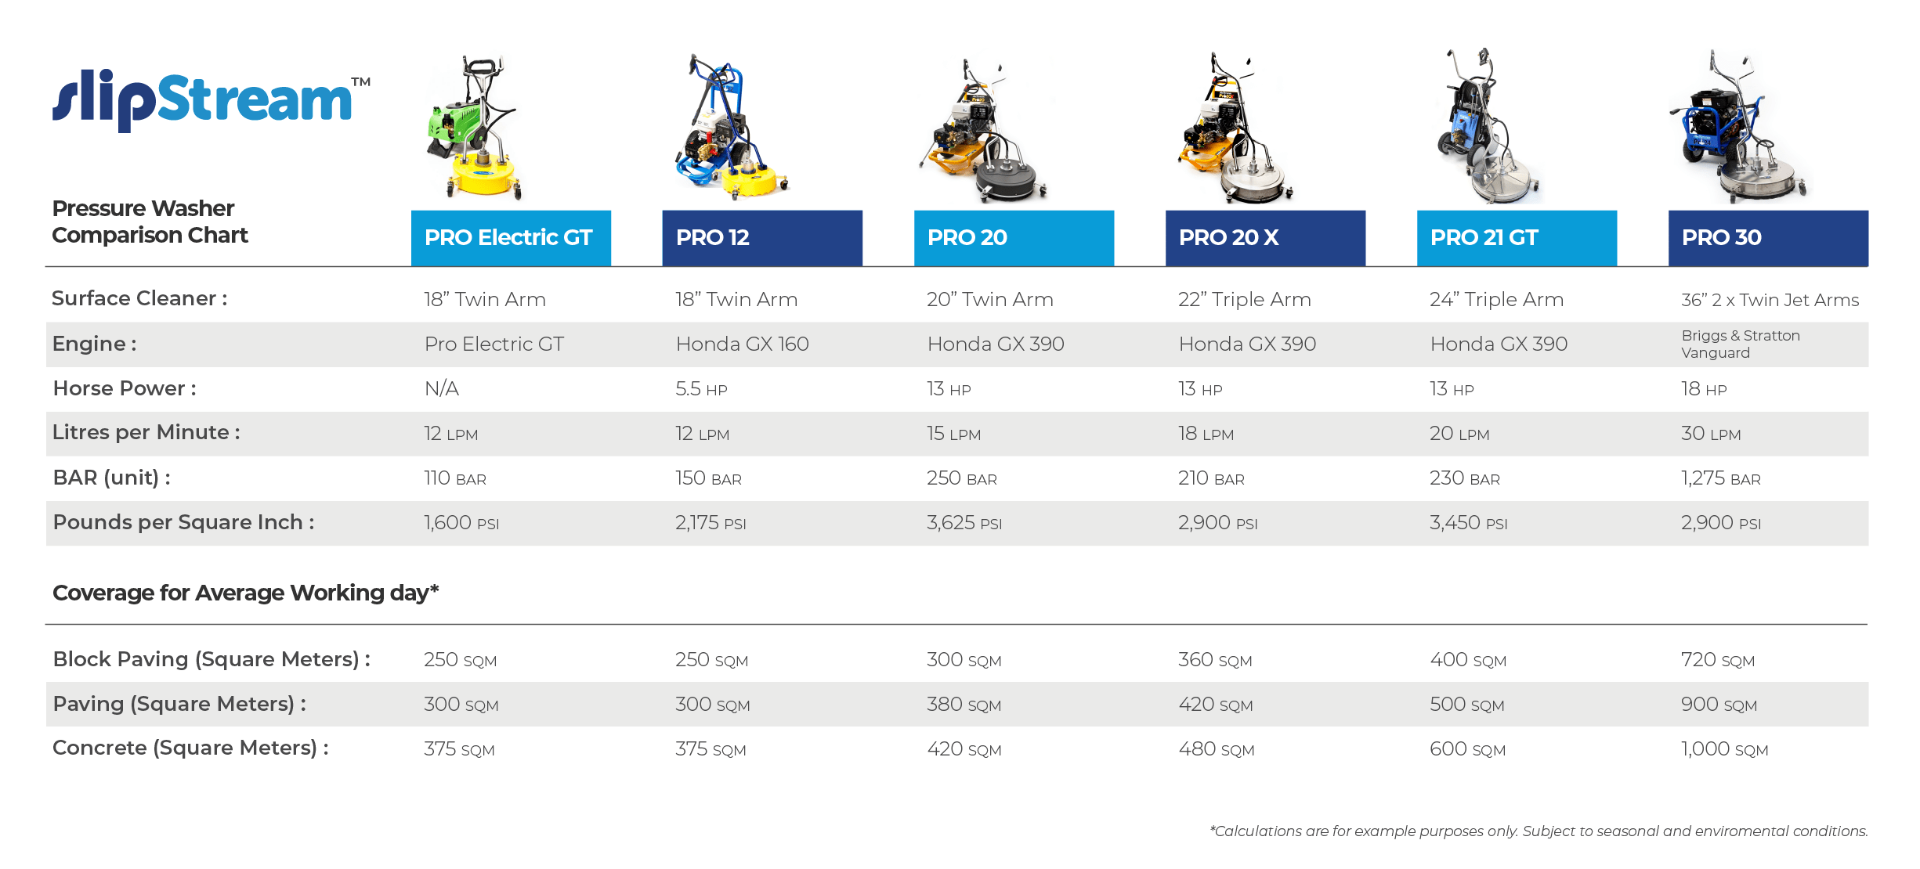 slipstream Pressure Washer Comparison chart